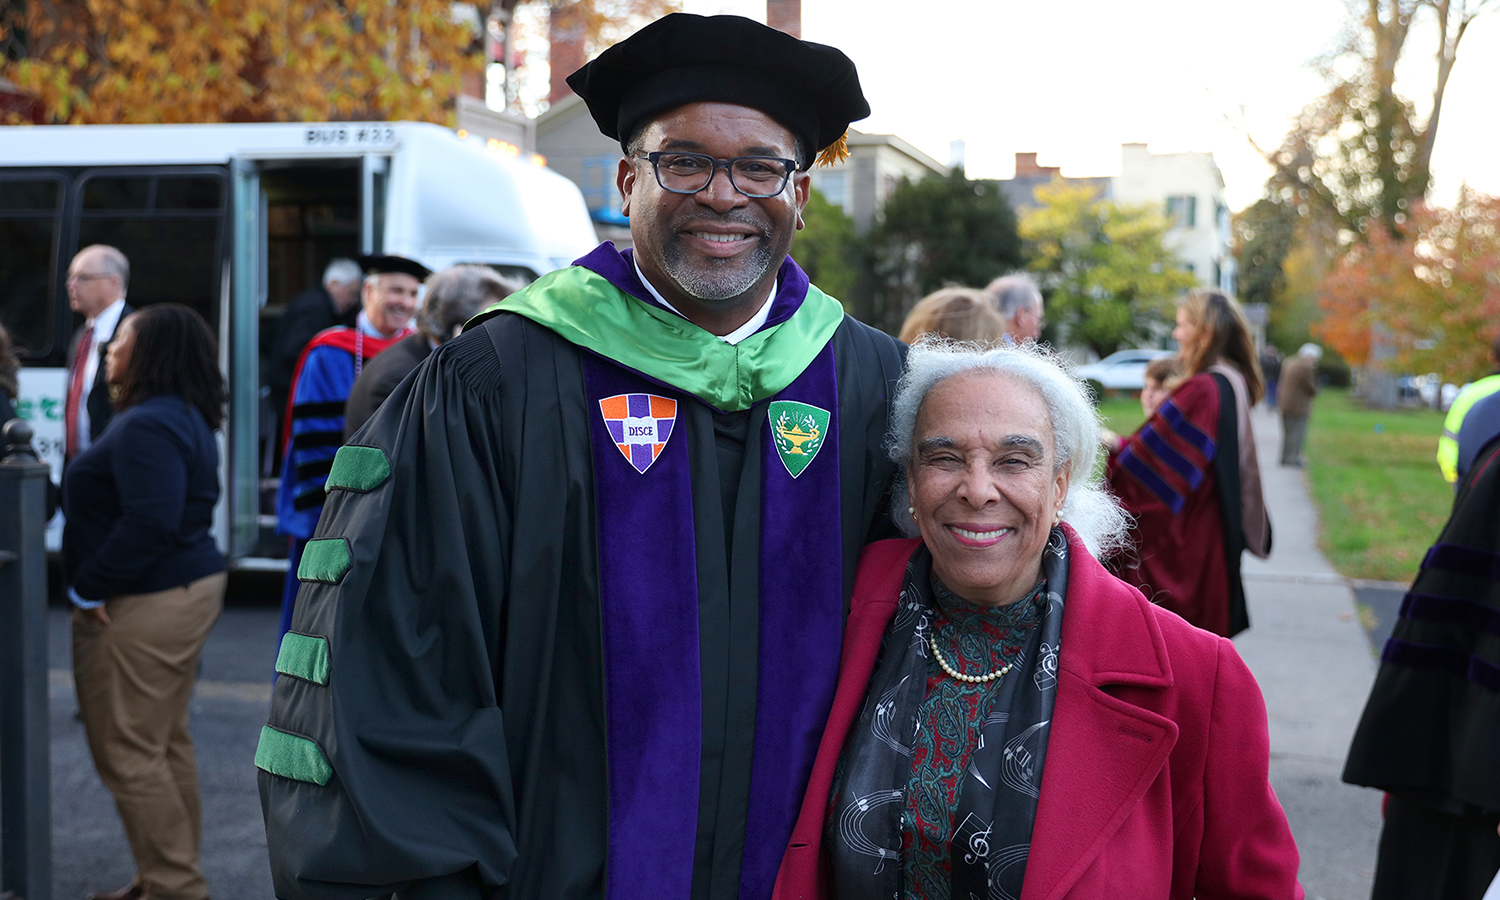 President Gregory J. Vincent '83 poses for a photo with Patricia Adams, the daughter of the Rev. Dr. Alger L. Adams '32, D.D. '83 the first African-American man to receive a degree from Hobart College, graduating magna cum laude and Phi Beta Kappa.